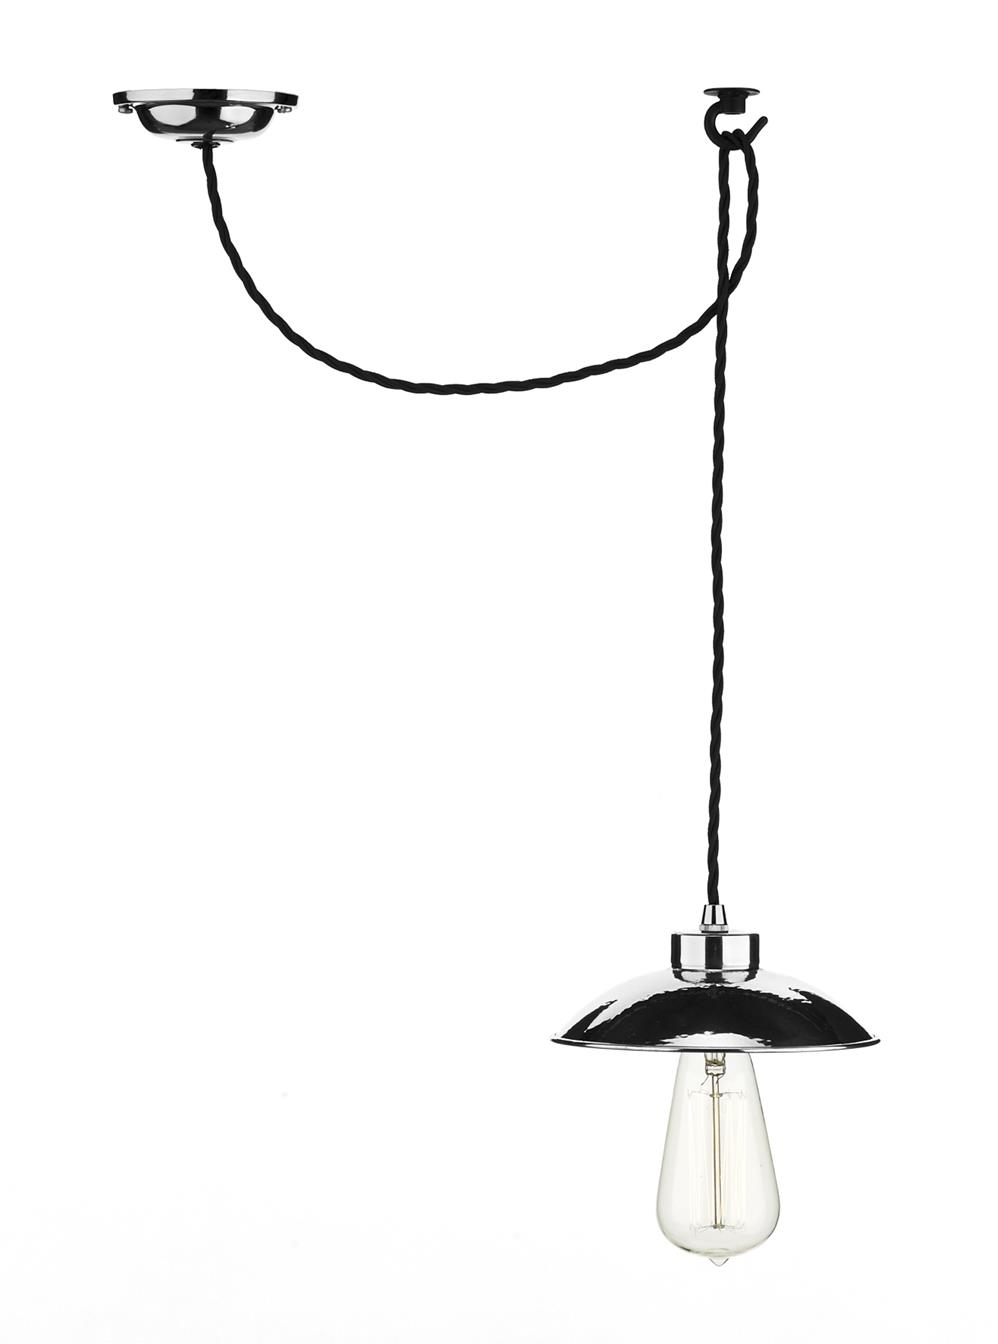 David Hunt Lighting DAL0150 Dallas 1 Light Pendant in Chrome